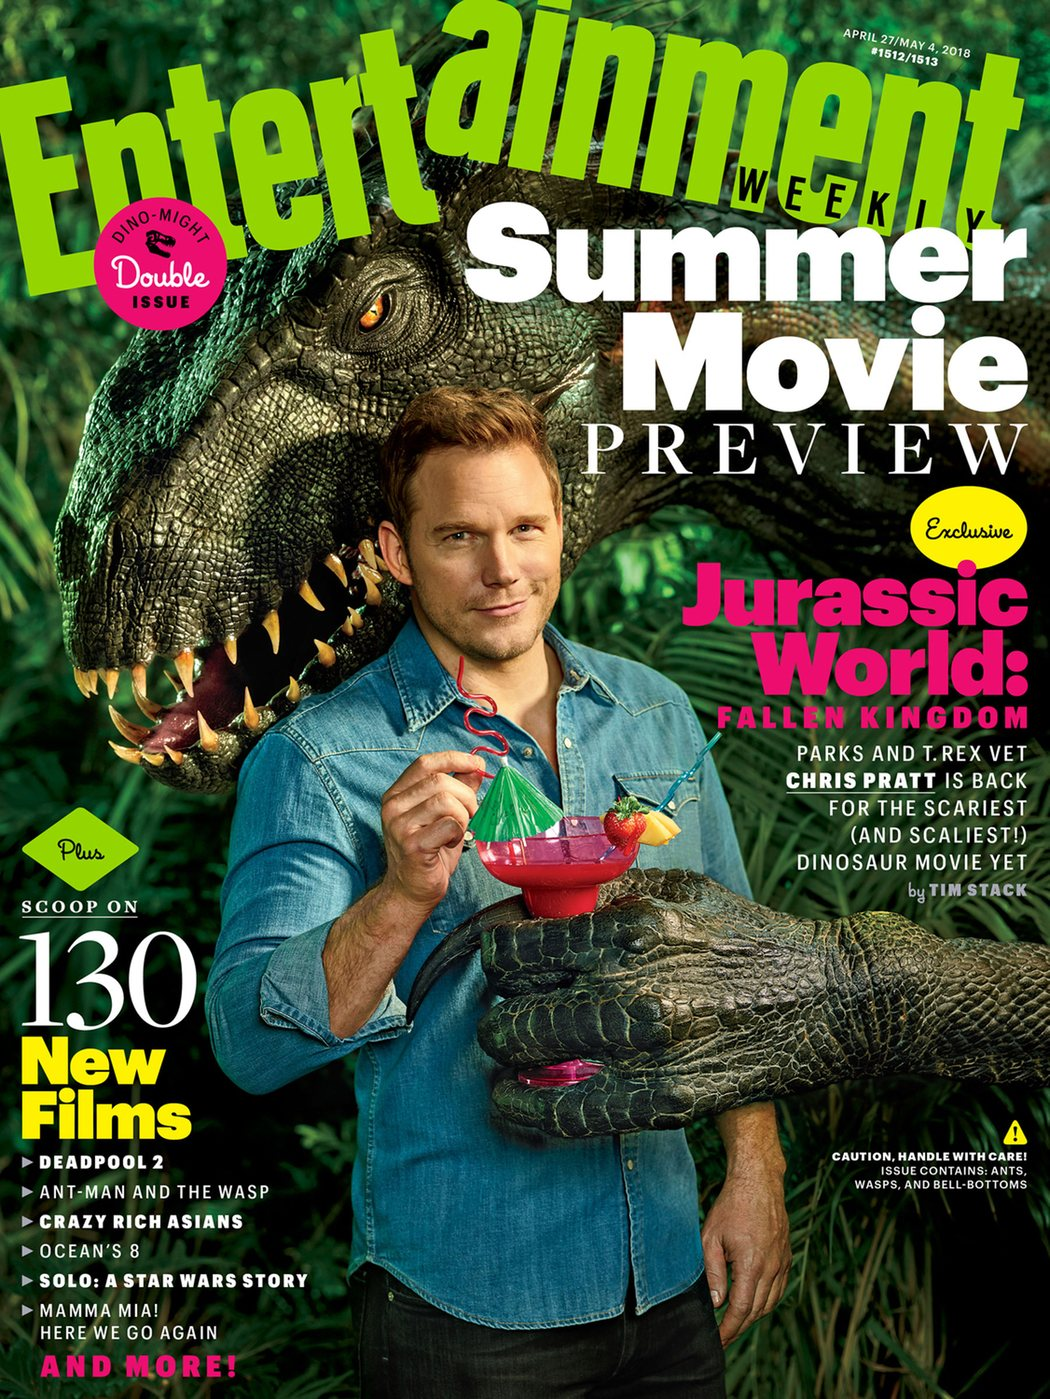 'Jurassic World: El reino caído' para Entertainment Weekly